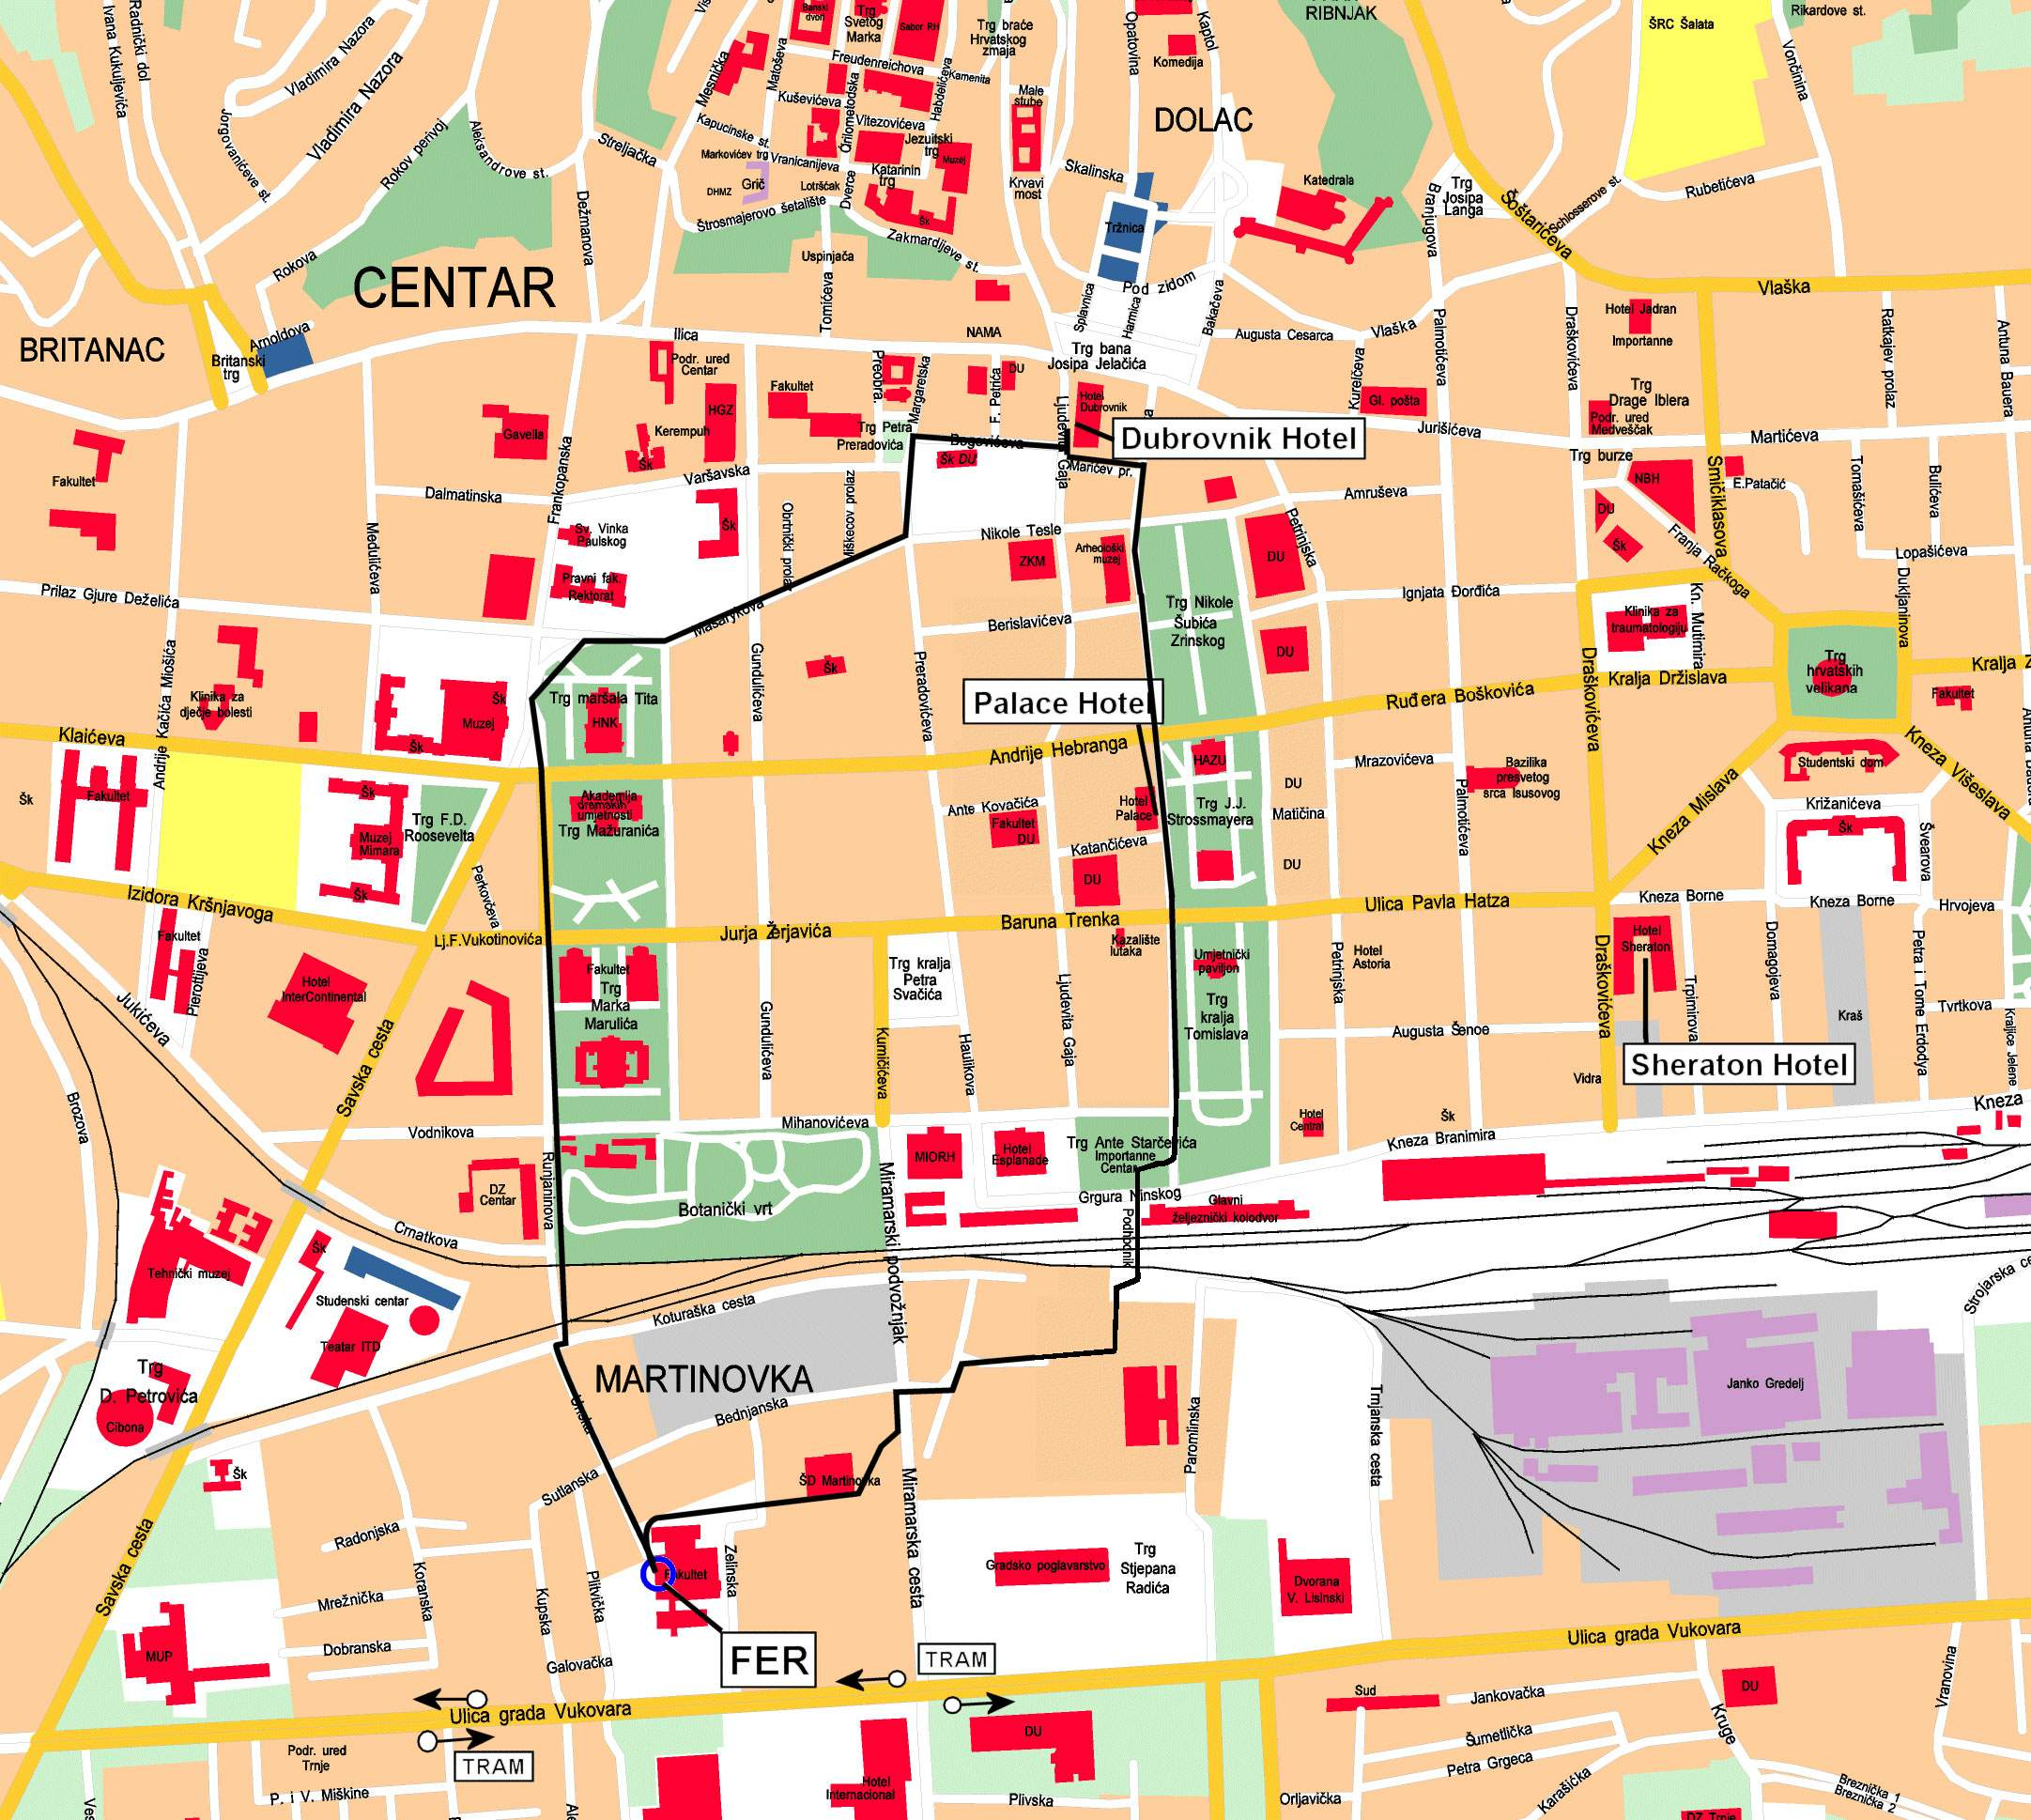 Large Zagreb Maps For Free Download And Print High Resolution And Detailed Maps